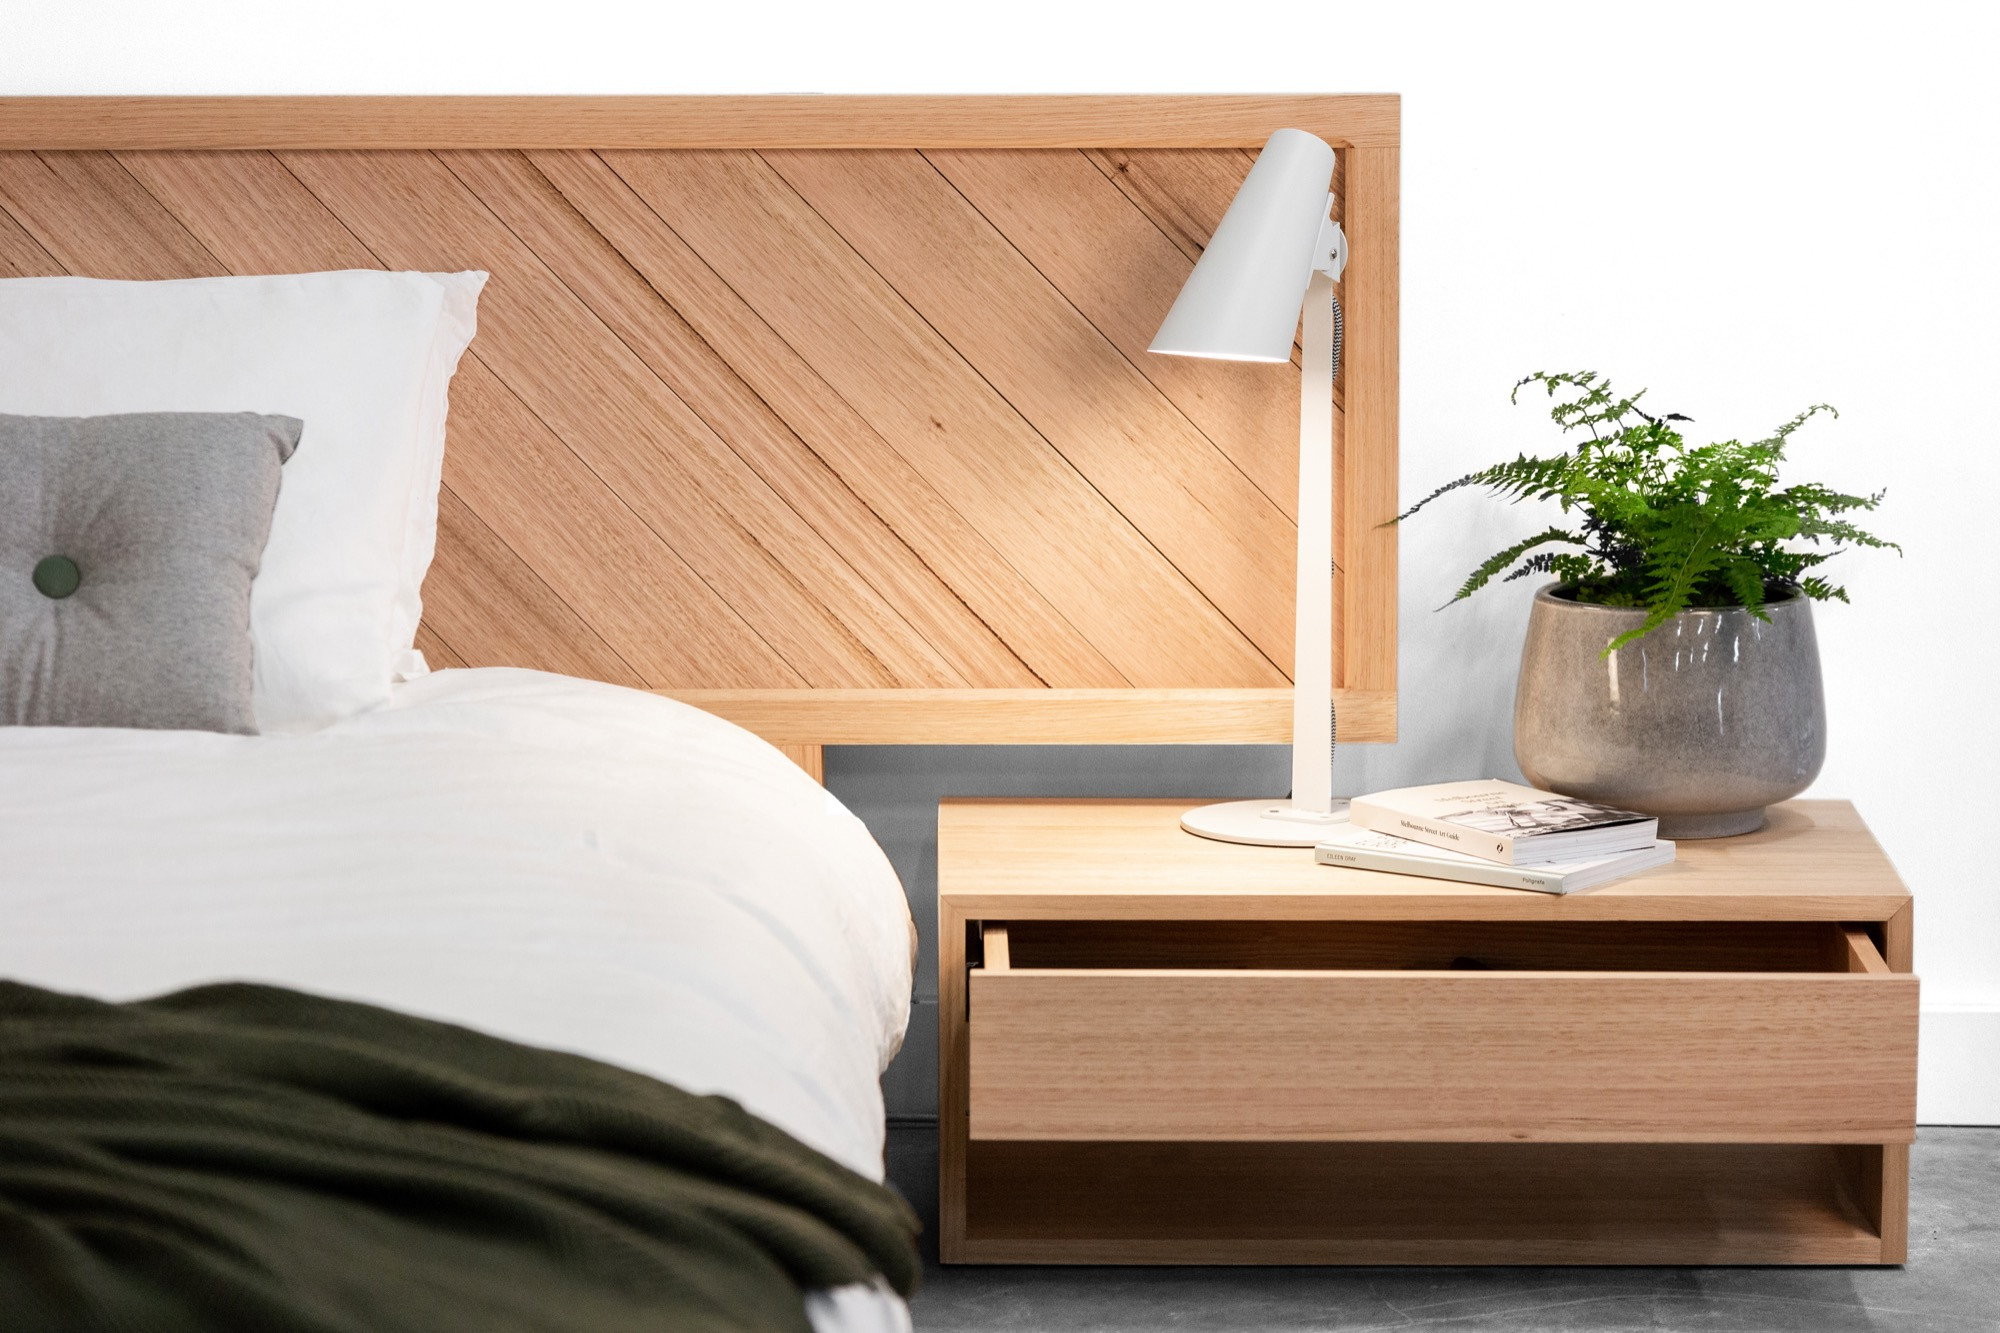 Chevron Bed 05 by Sawdust Bureau